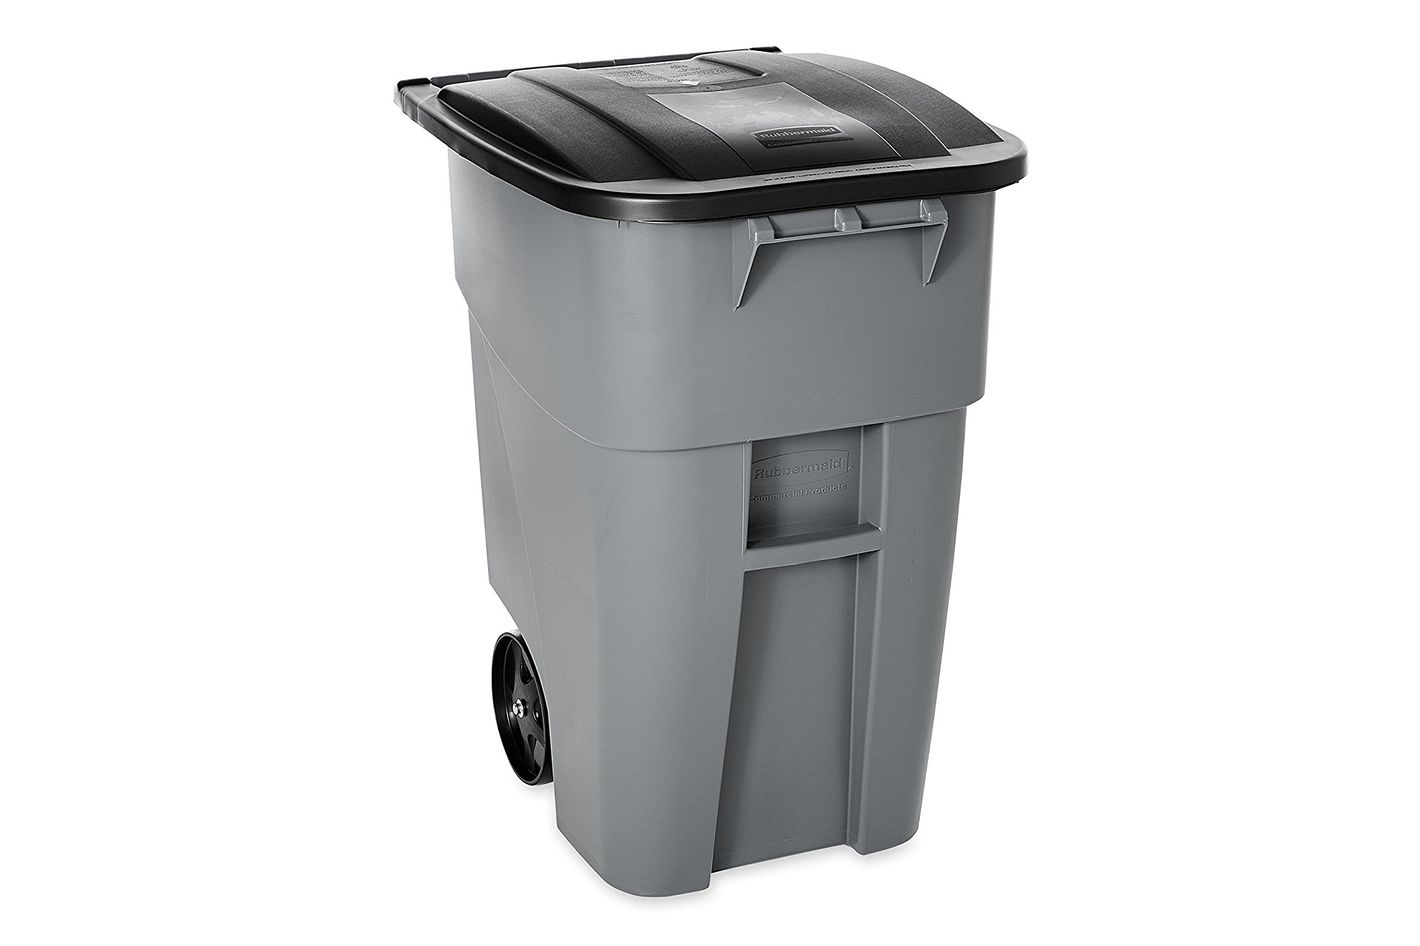 Rubbermaid Commercial Brute Recycler Rollout Trash Can With Hinged Lid, 50-Gallon